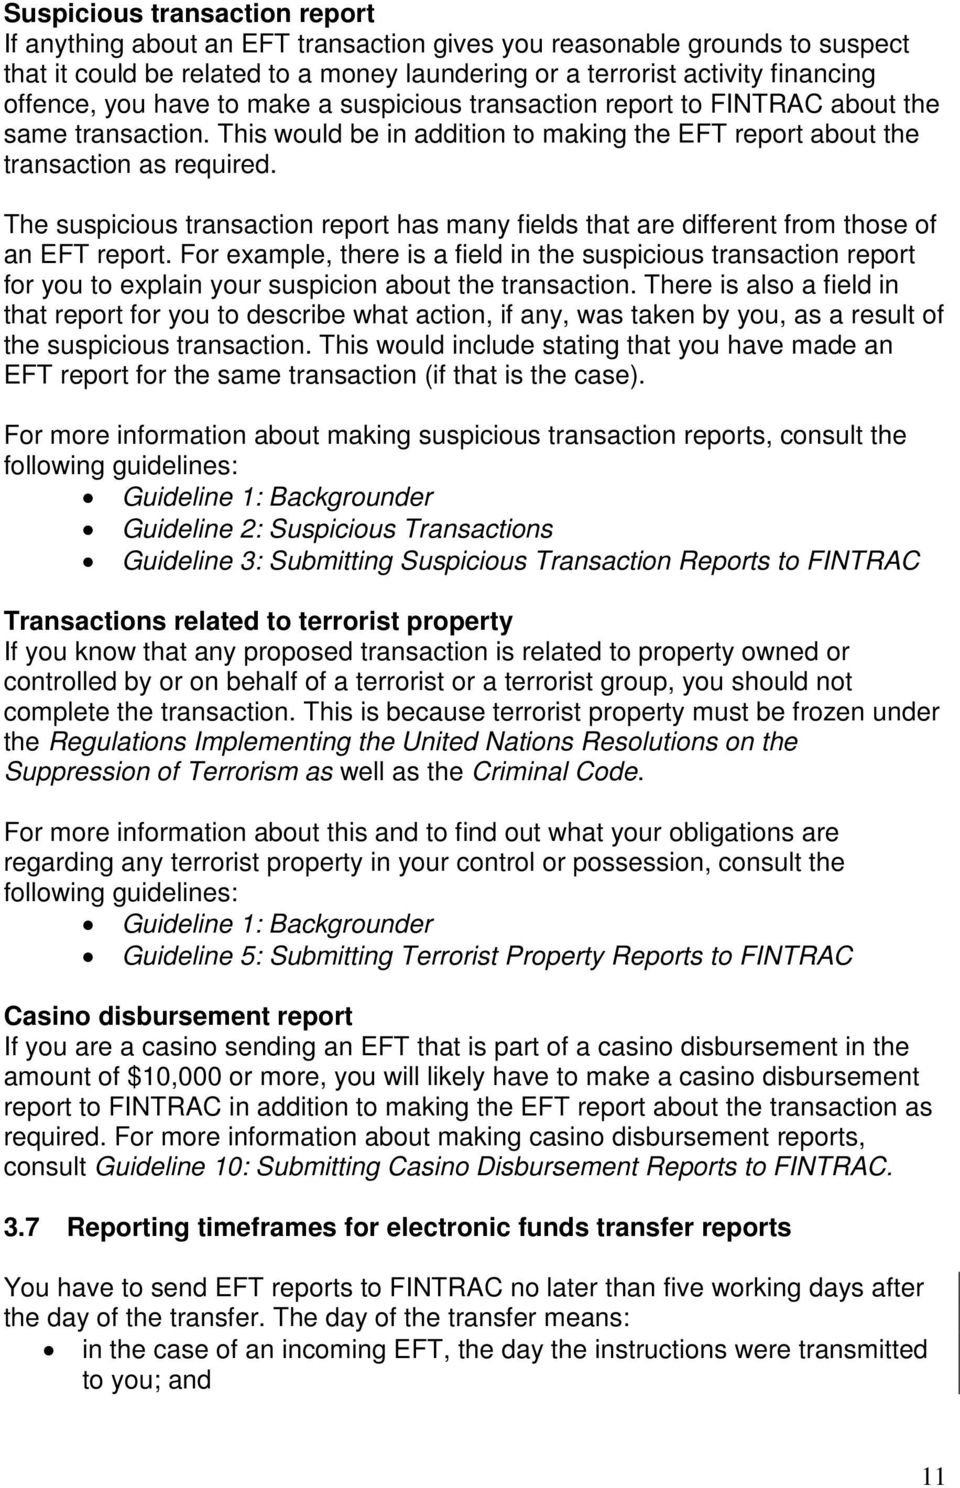 The suspicious transaction report has many fields that are different from those of an EFT report.